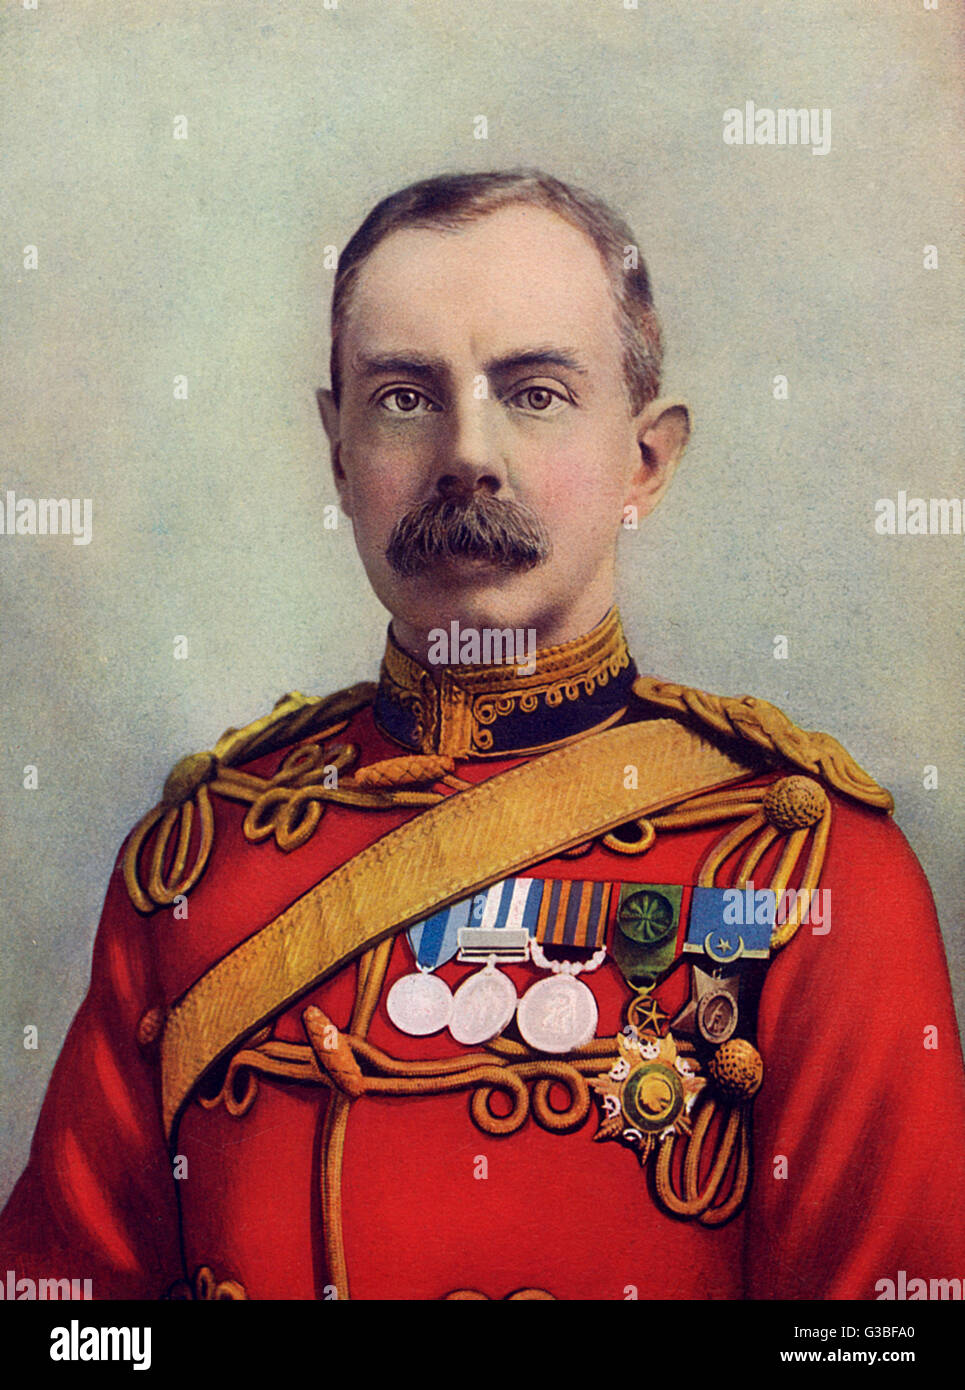 FIELD MARSHALL HERBERT  CHARLES ONSLOW, 1ST VISCOUNT  PLUMER OF MESSINES  English military commander.      Date: Stock Photo